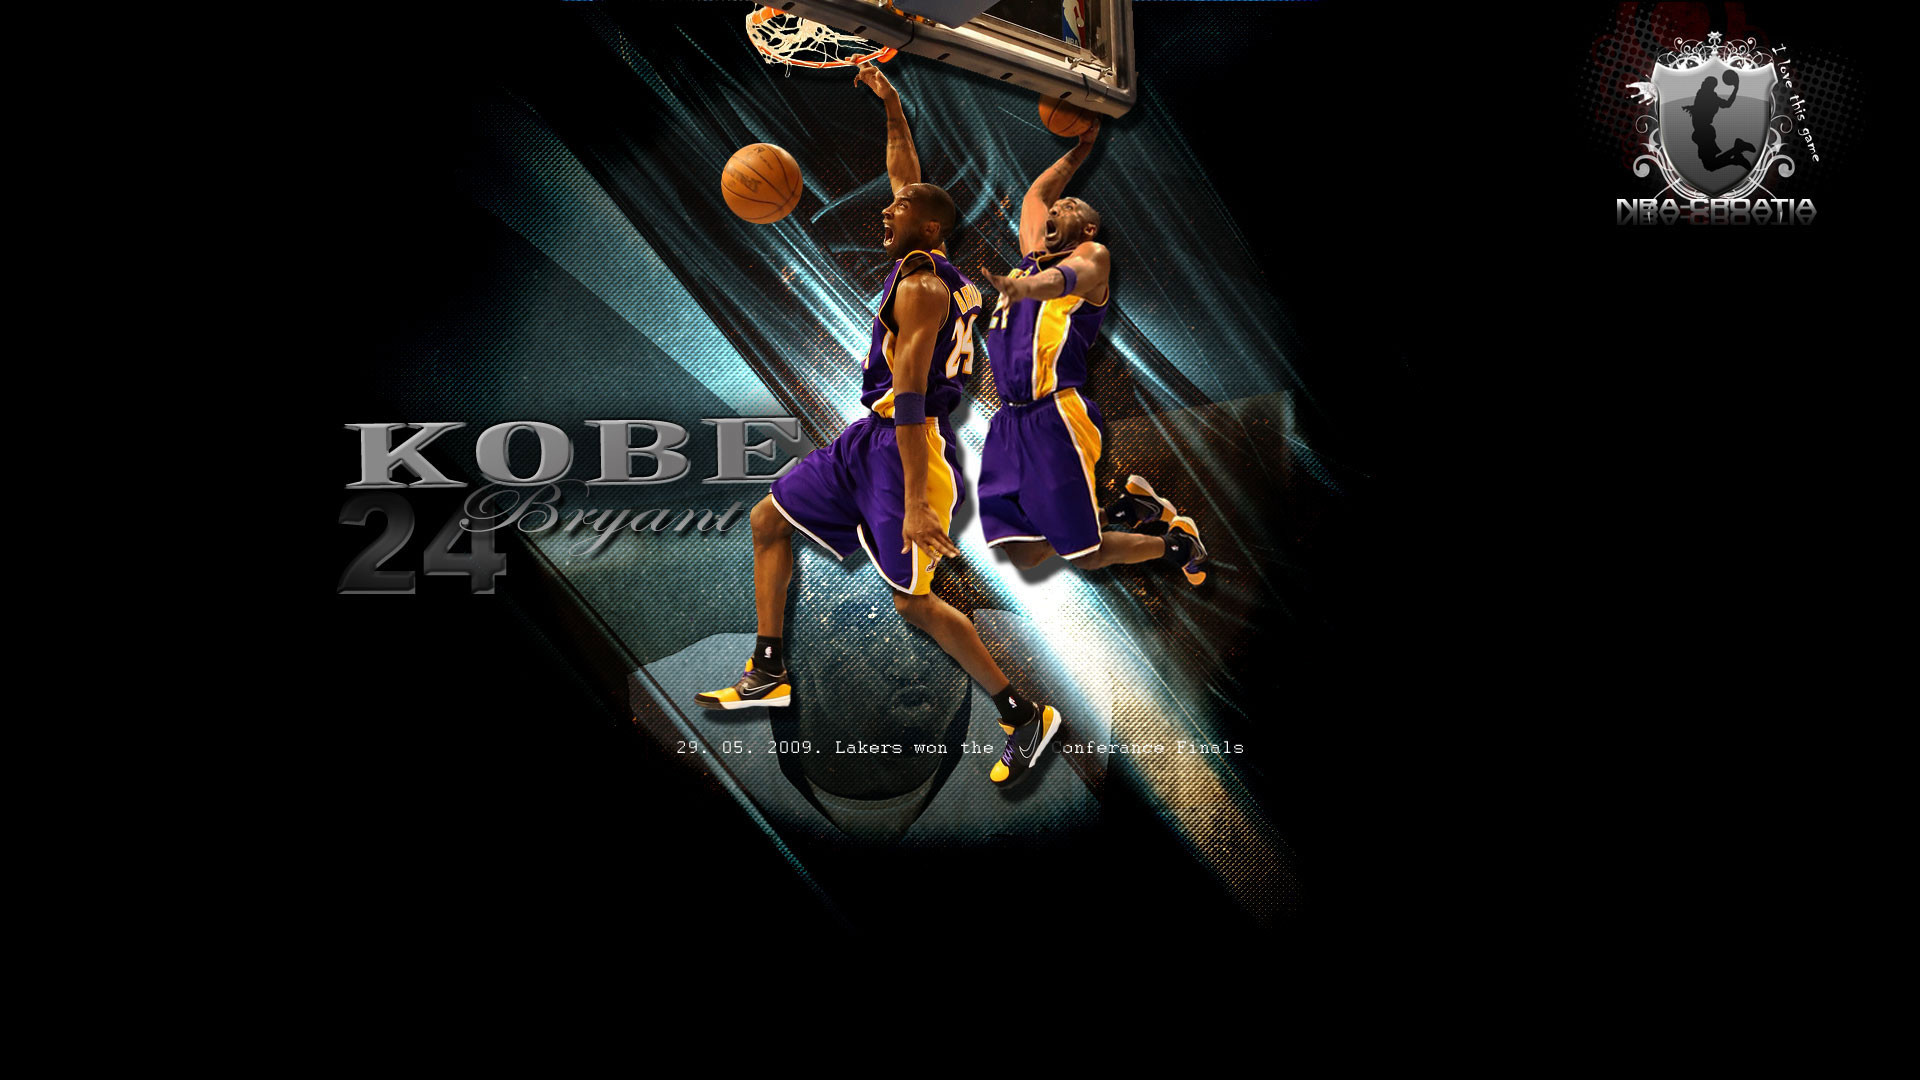 Kobe bryant wallpaper hd 2018 71 images 1920x1080 voltagebd Image collections